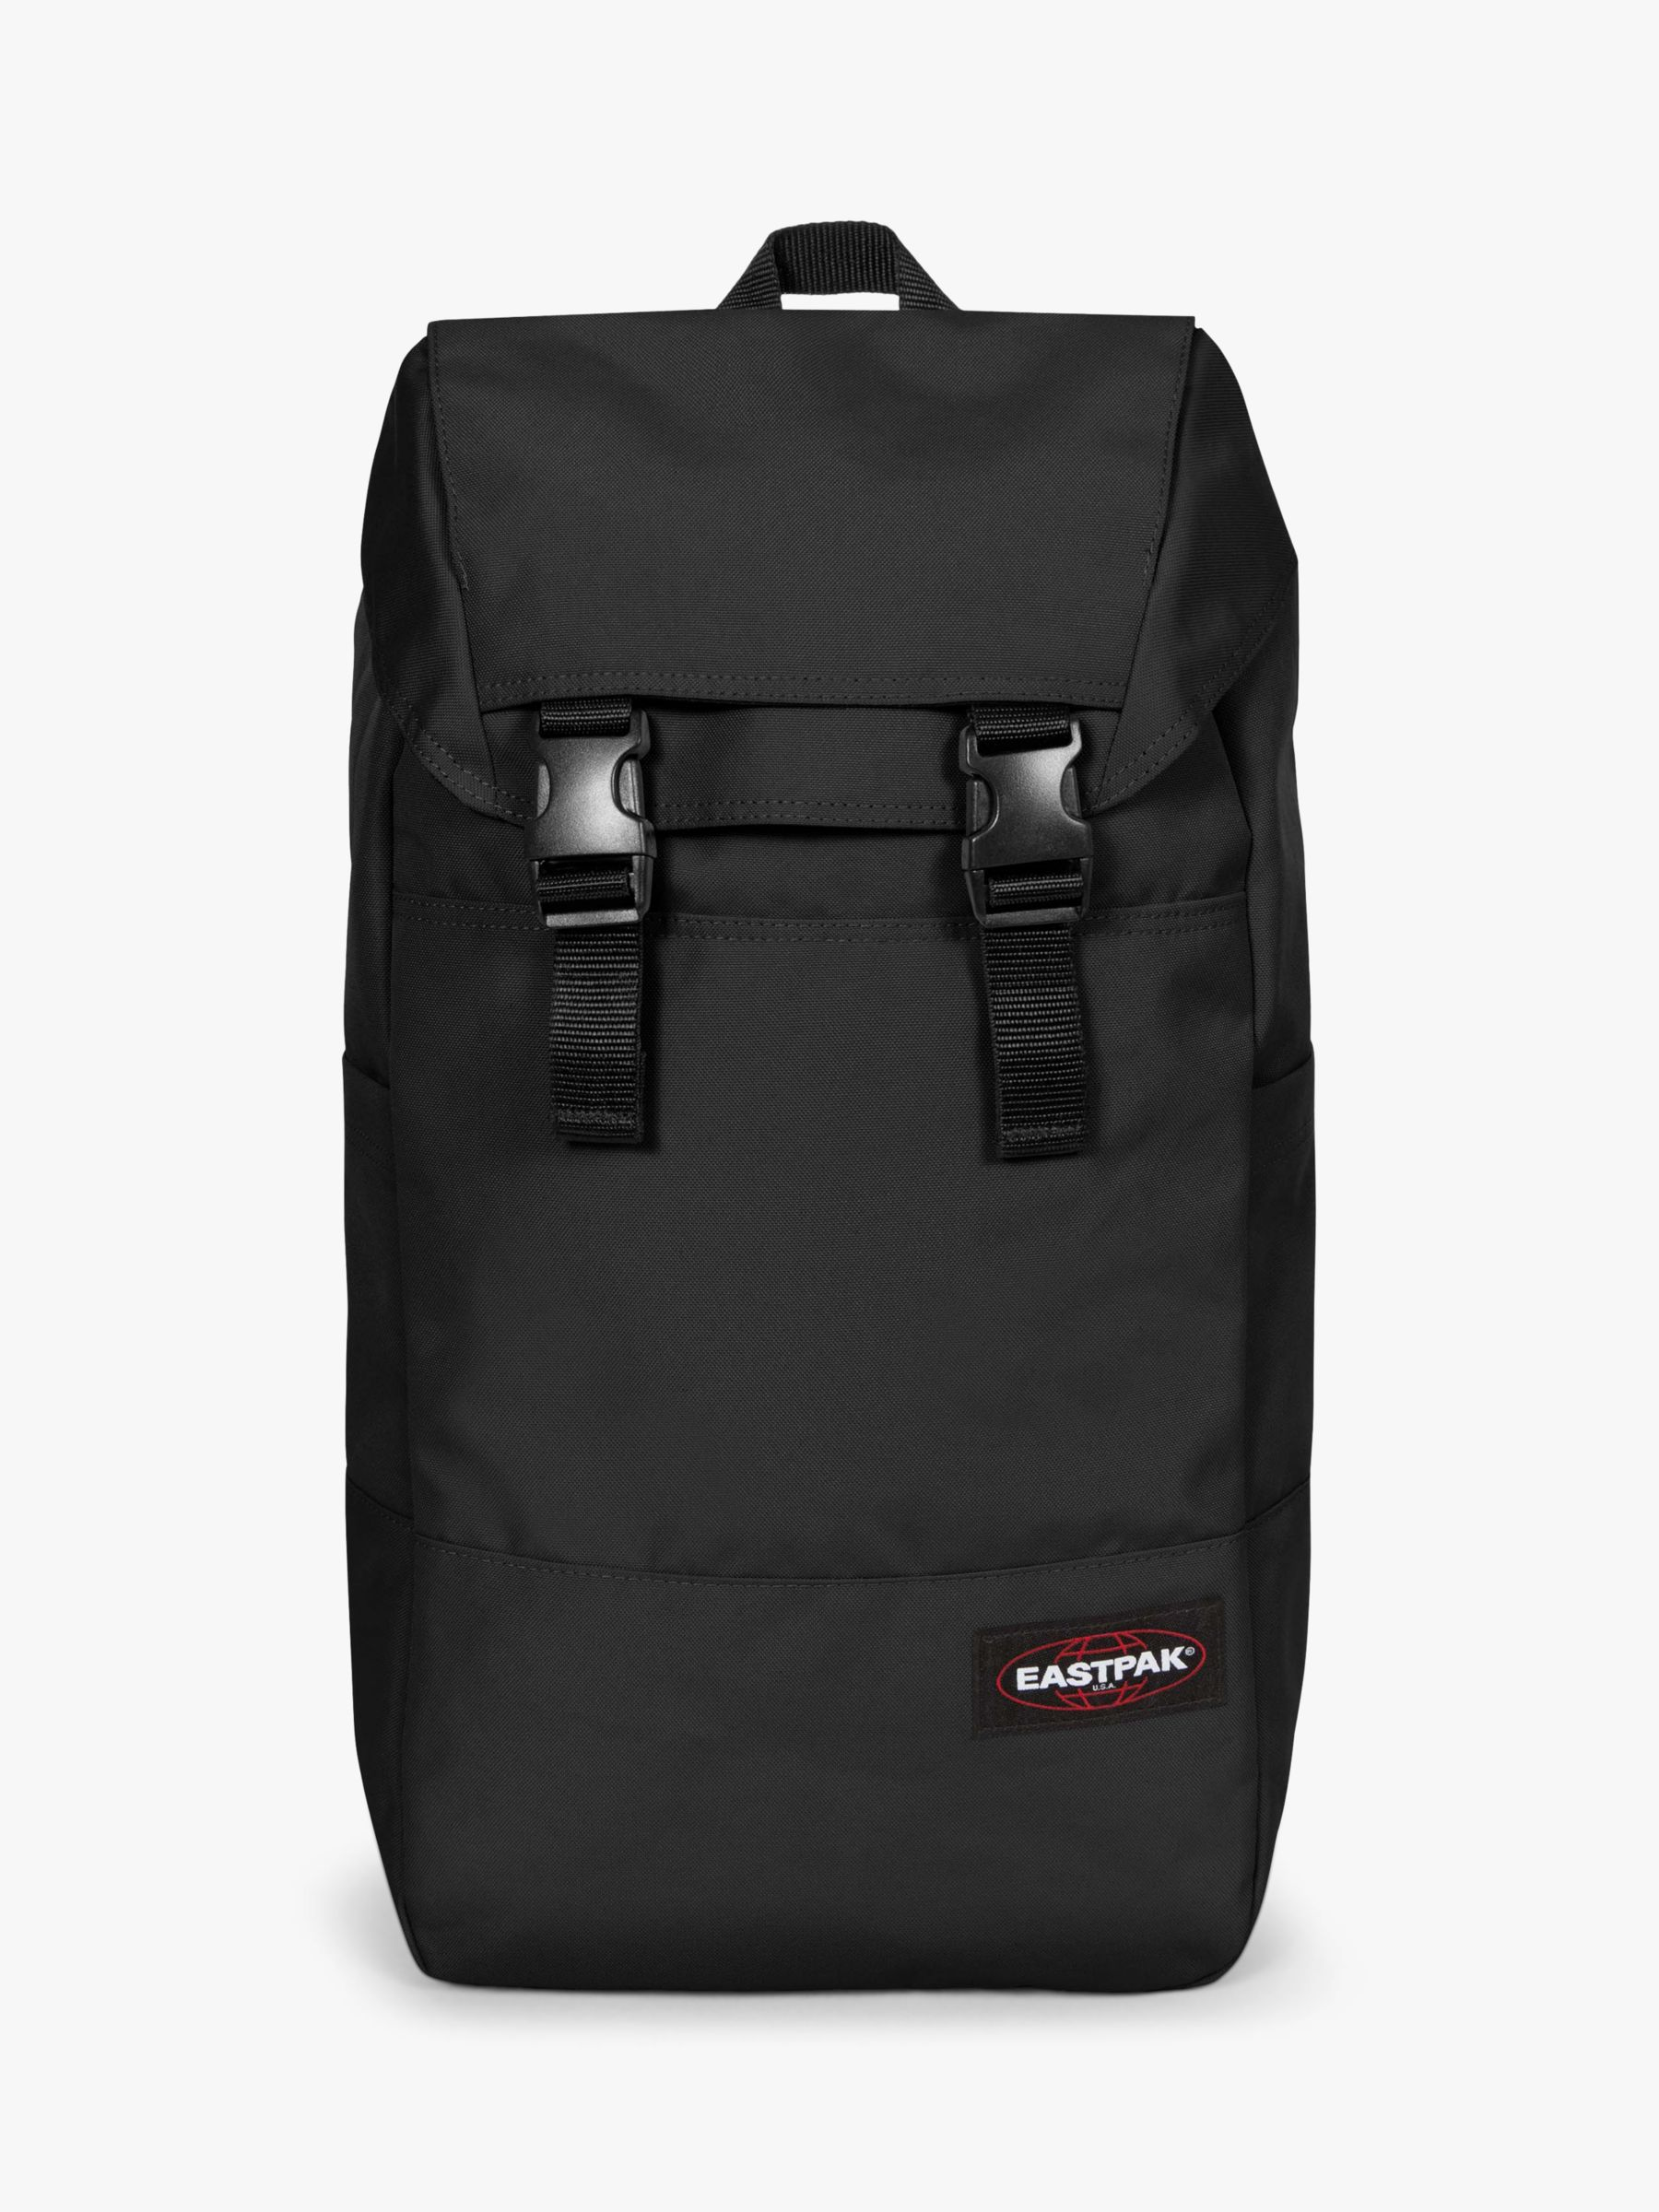 Eastpak Eastpak Bust Backpack, Black